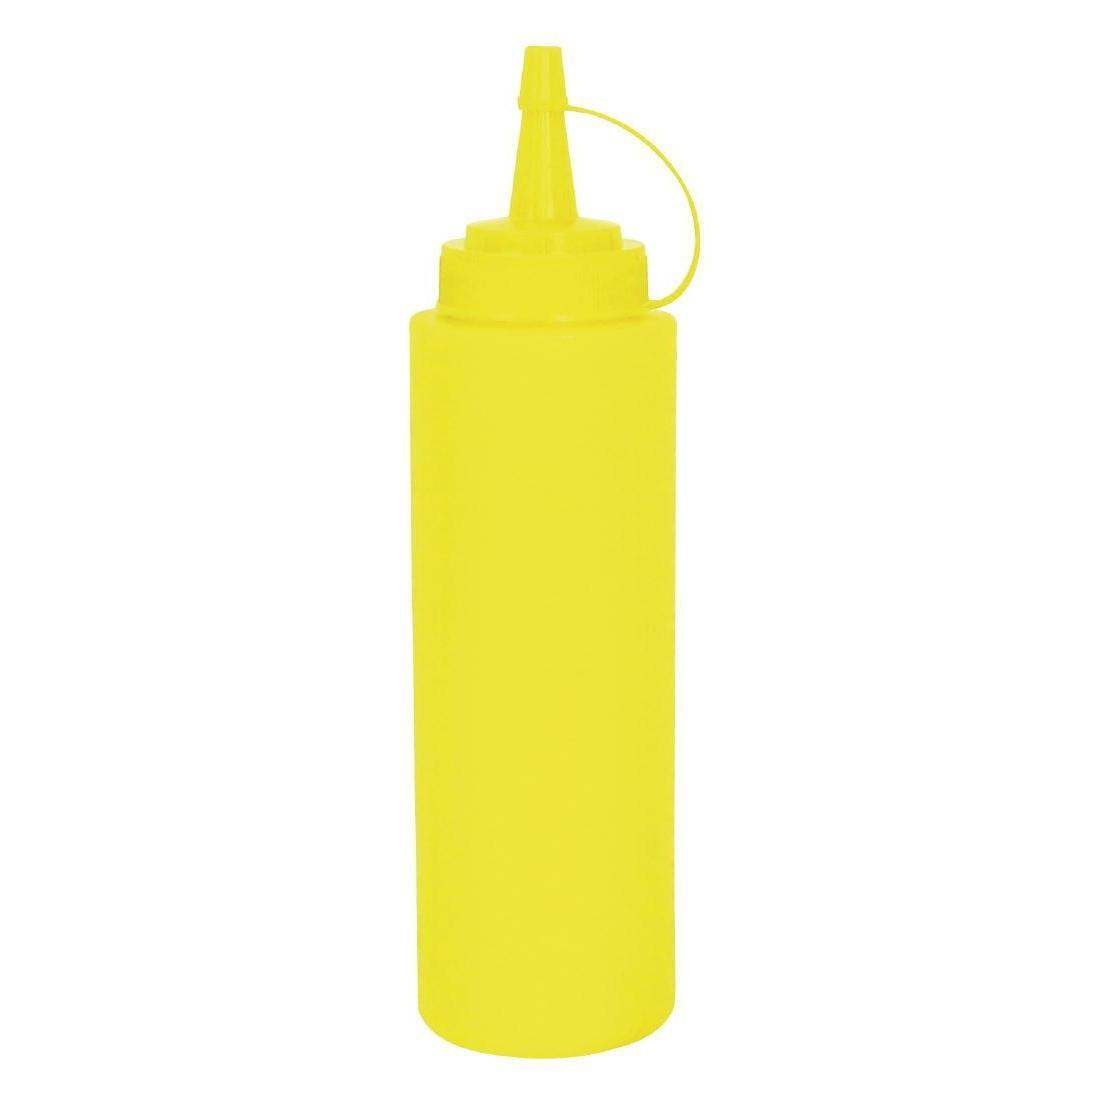 Vogue Yellow Squeeze Sauce Bottle 12oz - Each - K144